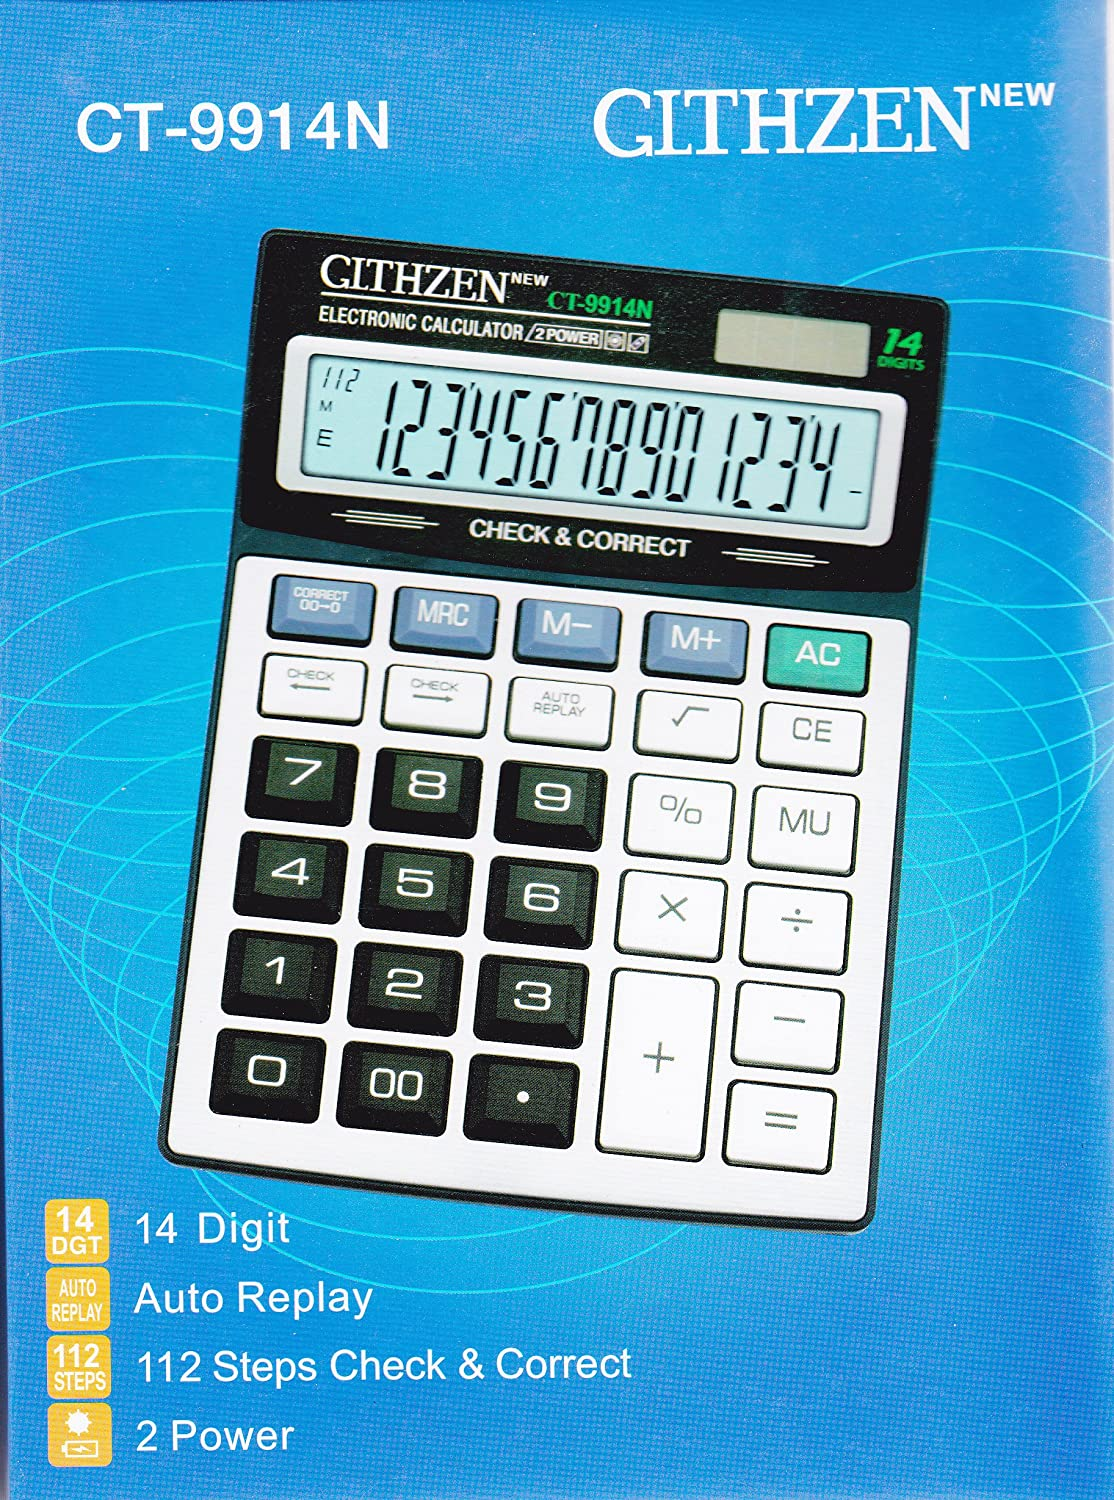 Clthzen CT-9914N Large Display Electronic Calculator Two Way Power ...